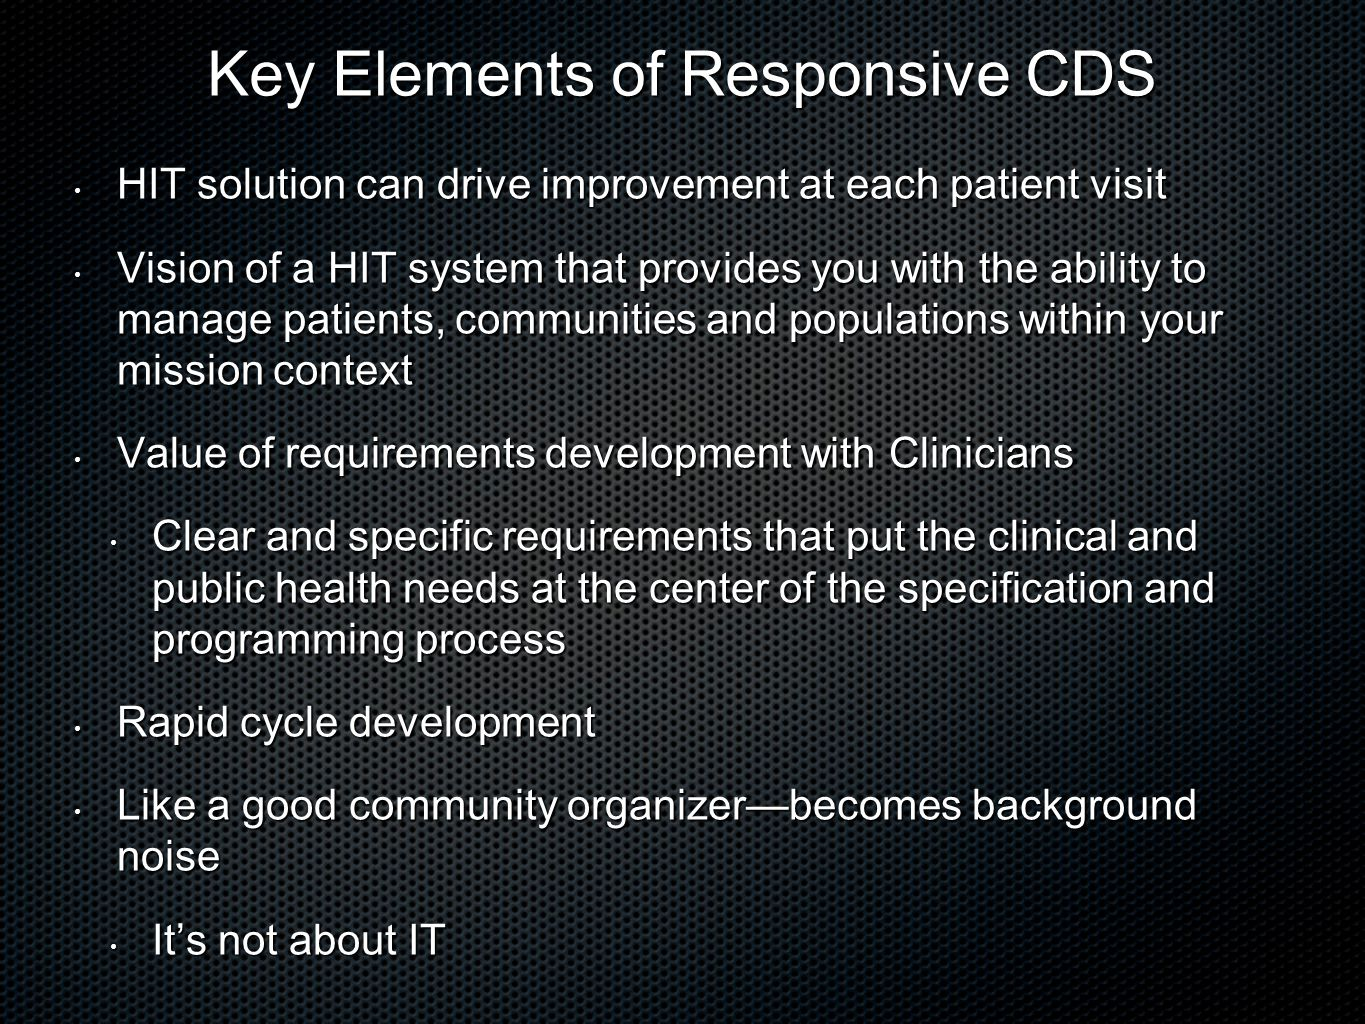 Key Elements of Responsive CDS HIT solution can drive improvement at each patient visit HIT solution can drive improvement at each patient visit Vision of a HIT system that provides you with the ability to manage patients, communities and populations within your mission context Vision of a HIT system that provides you with the ability to manage patients, communities and populations within your mission context Value of requirements development with Clinicians Value of requirements development with Clinicians Clear and specific requirements that put the clinical and public health needs at the center of the specification and programming process Clear and specific requirements that put the clinical and public health needs at the center of the specification and programming process Rapid cycle development Rapid cycle development Like a good community organizerbecomes background noise Like a good community organizerbecomes background noise Its not about IT Its not about IT